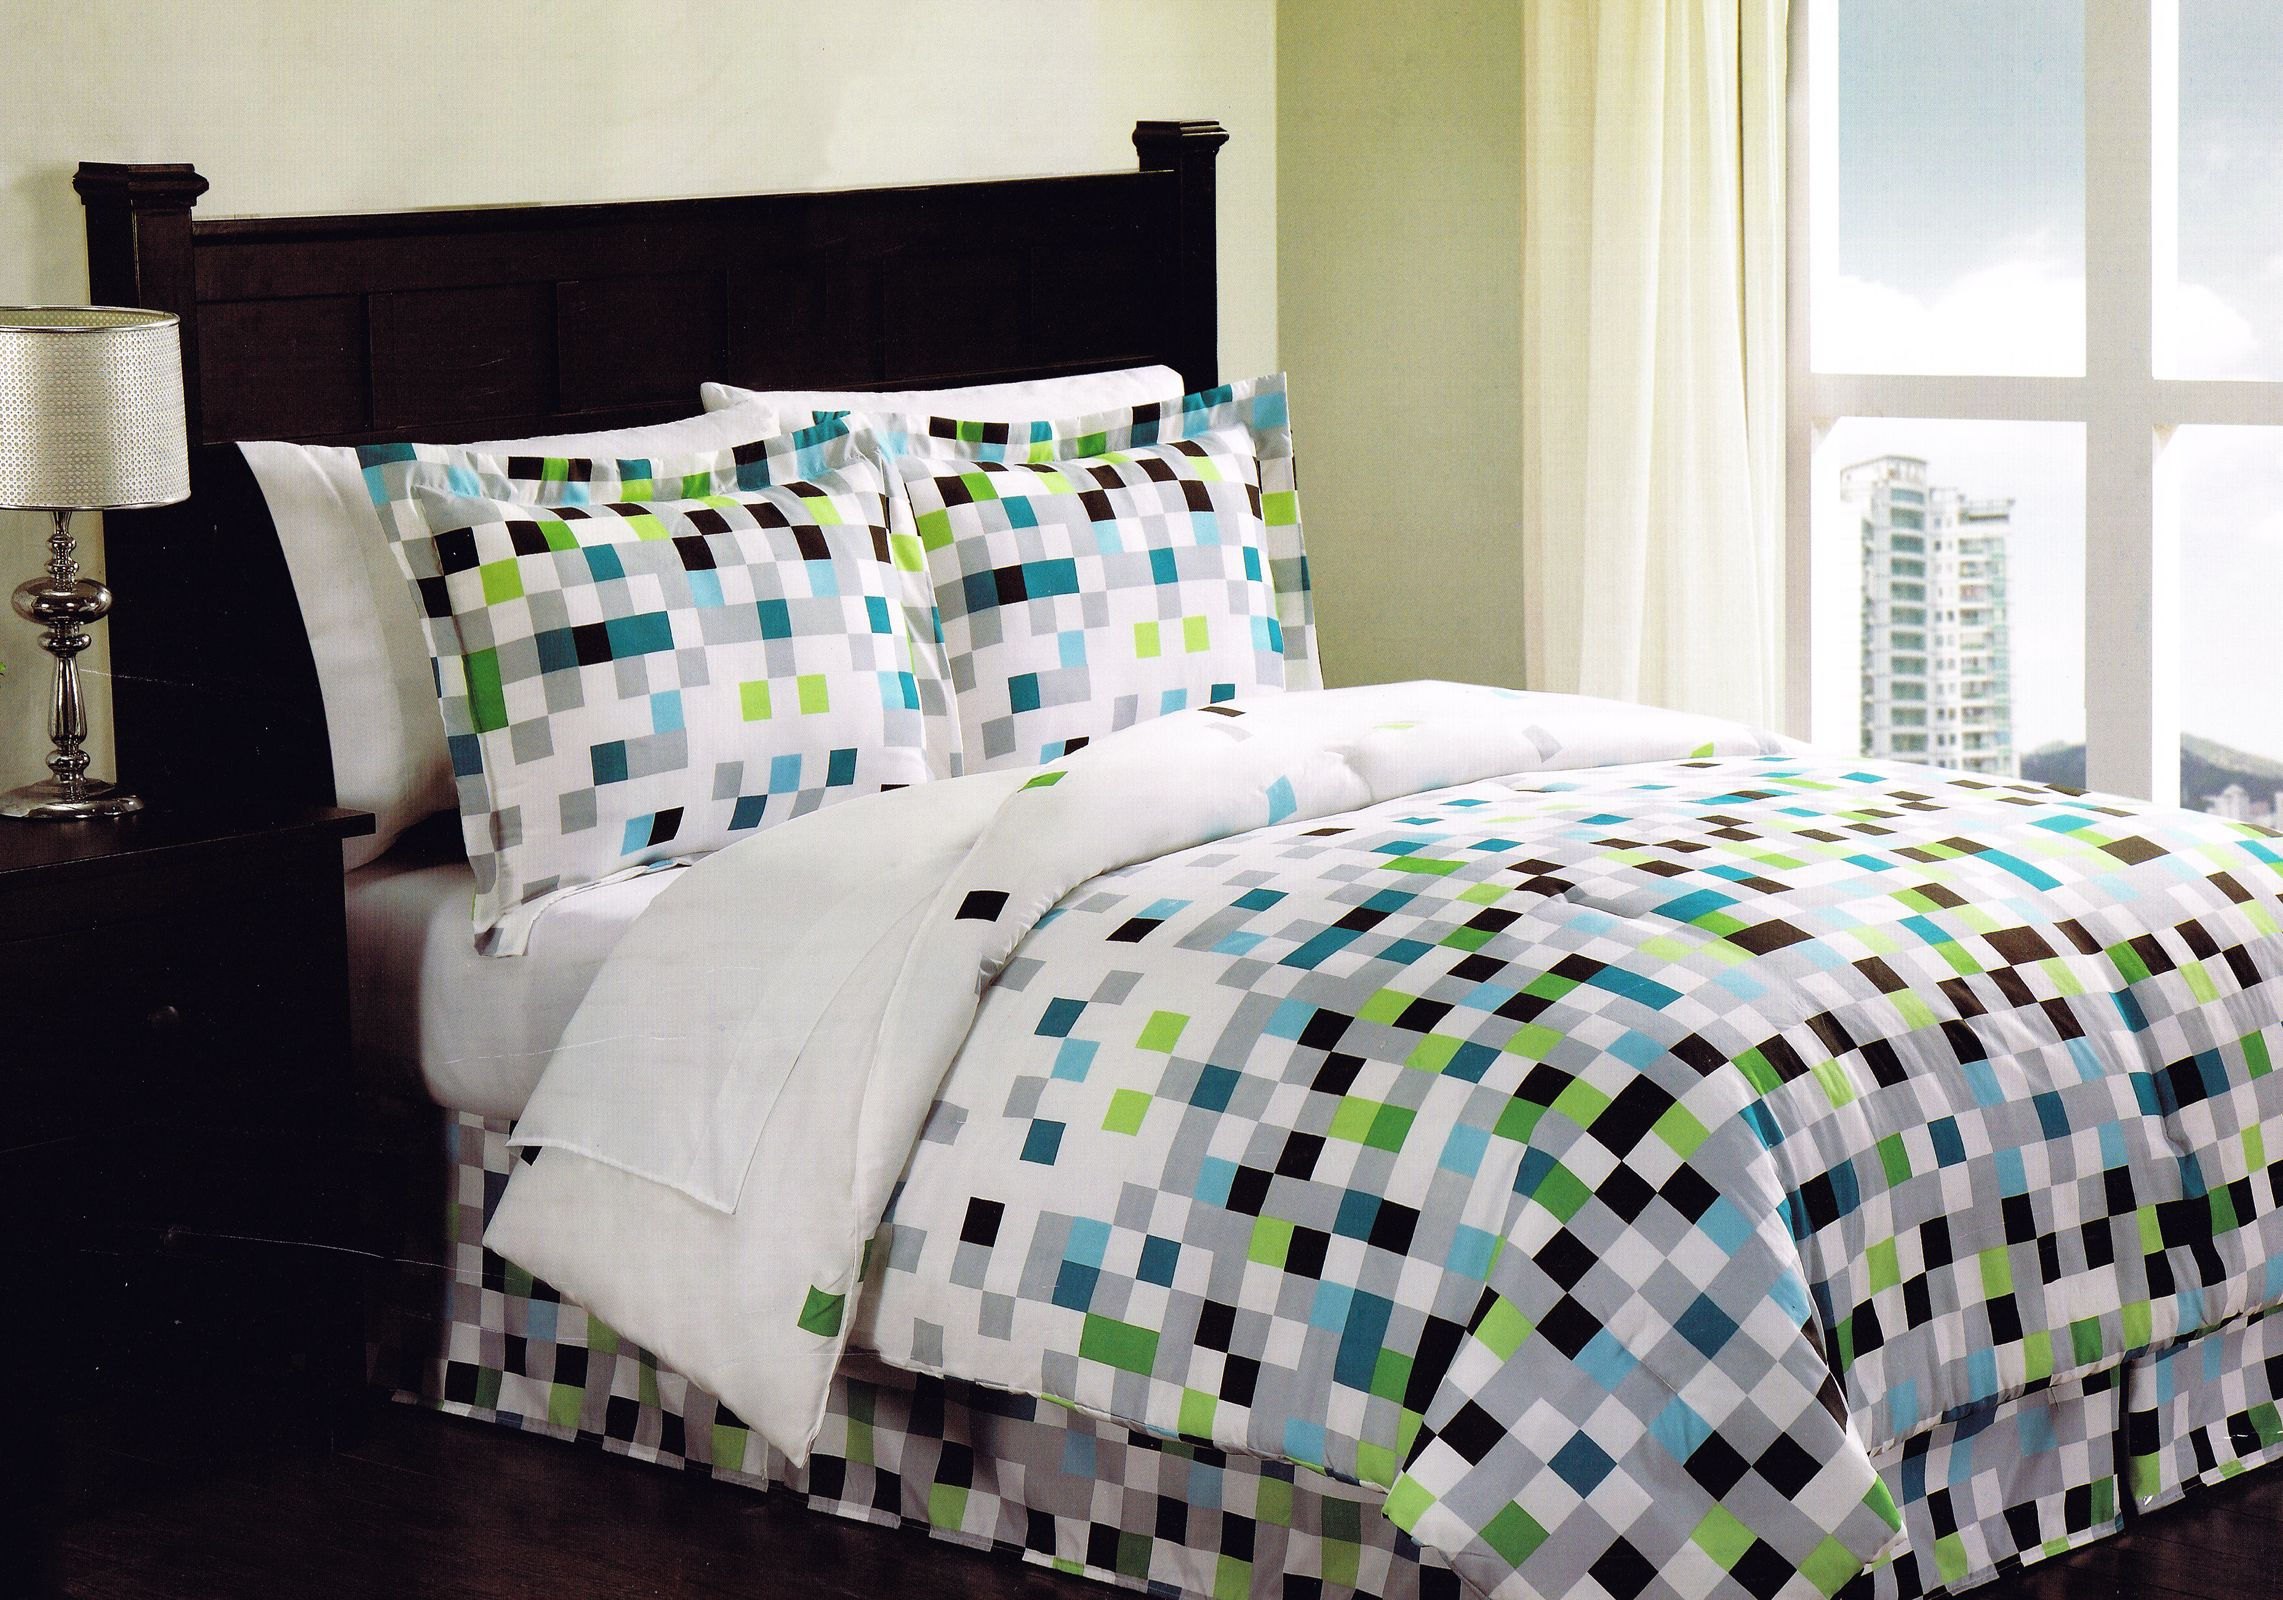 Minecraft Pixels Comforter Set Bedding Bed In A Bag Geometric White Green Black